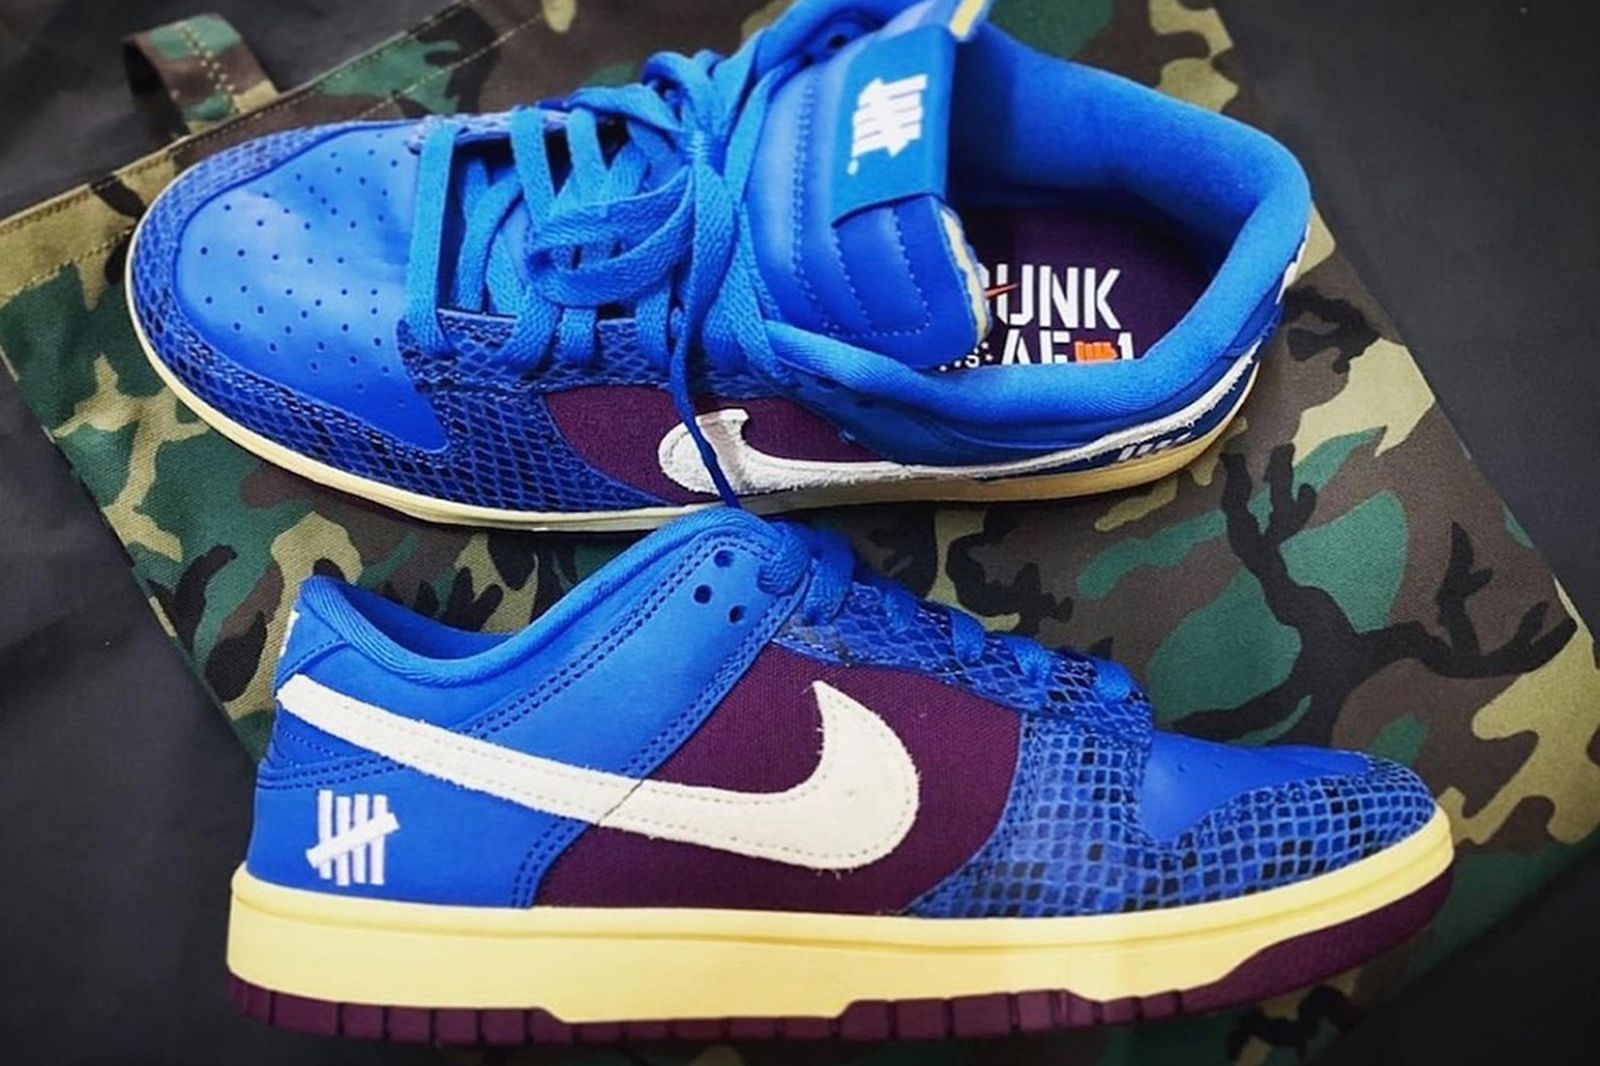 undefeated-nike-dunk-low-release-date-price-01